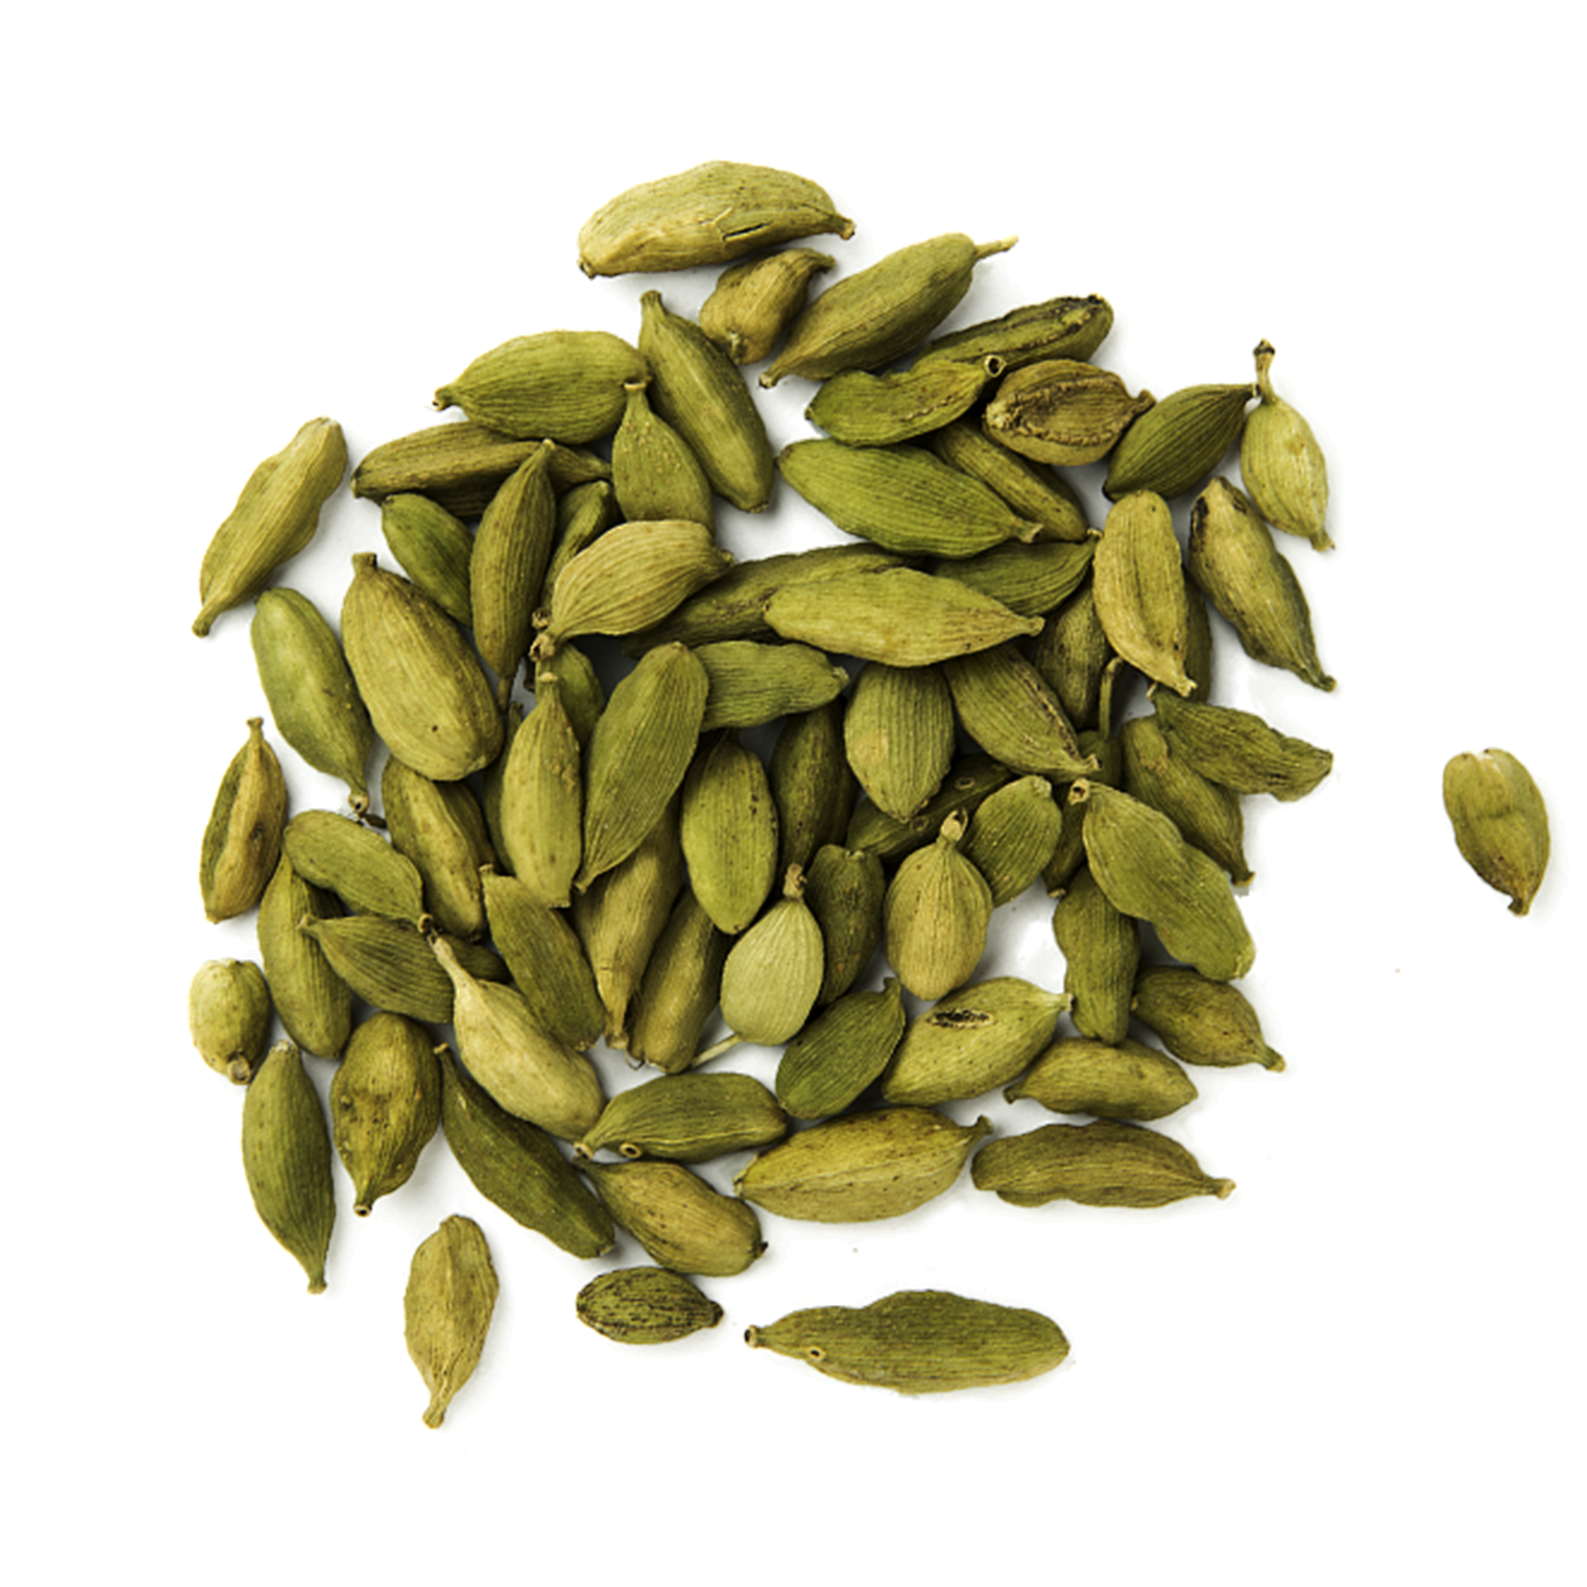 Cardamomo Seme Verde - Spezia - 50gr - Ingrediente per Cocktail di Altissima Qualità